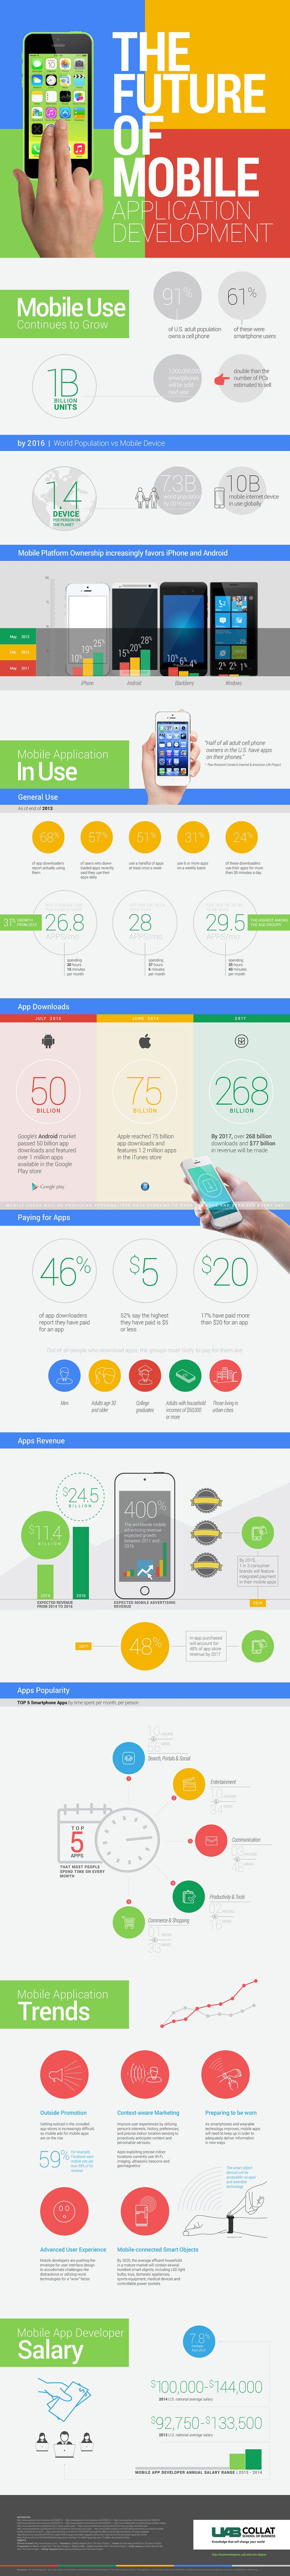 By 2017, the App Market Will Be a $77 Billion Industry (Infographic) #appindustry #appdevelopemwnt